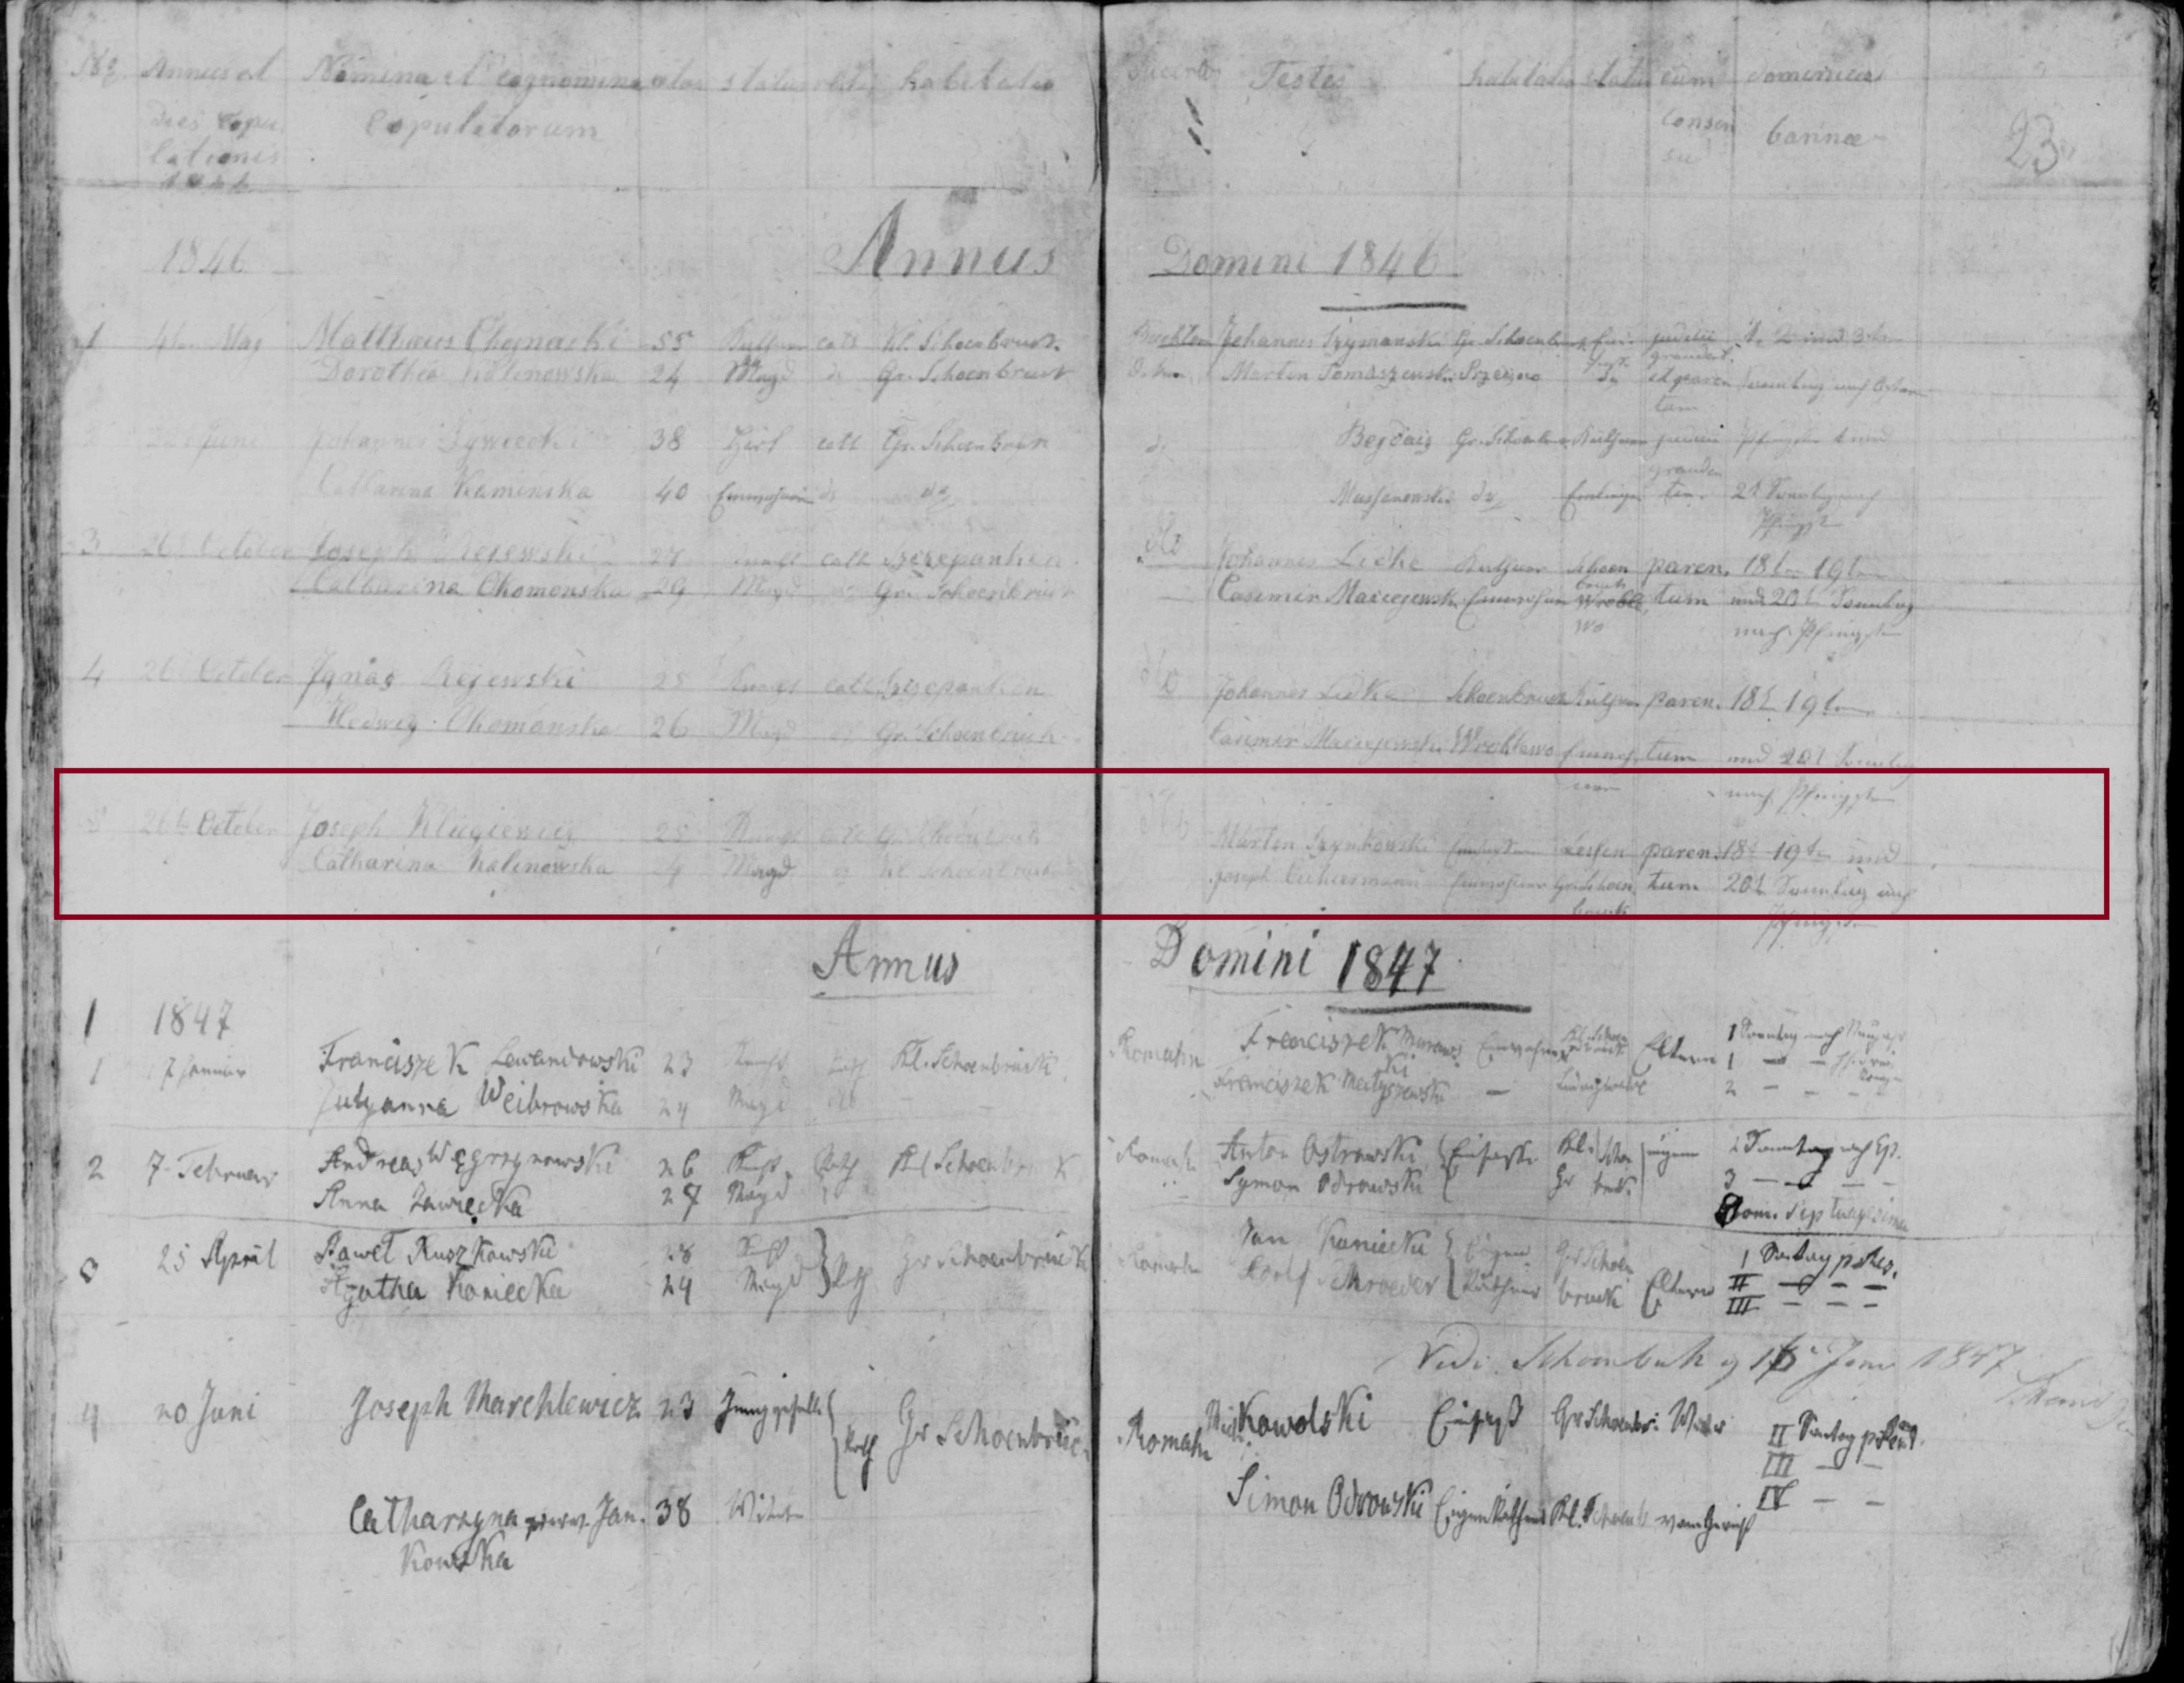 1846 Klugiewicz Kalinowska marriage marked